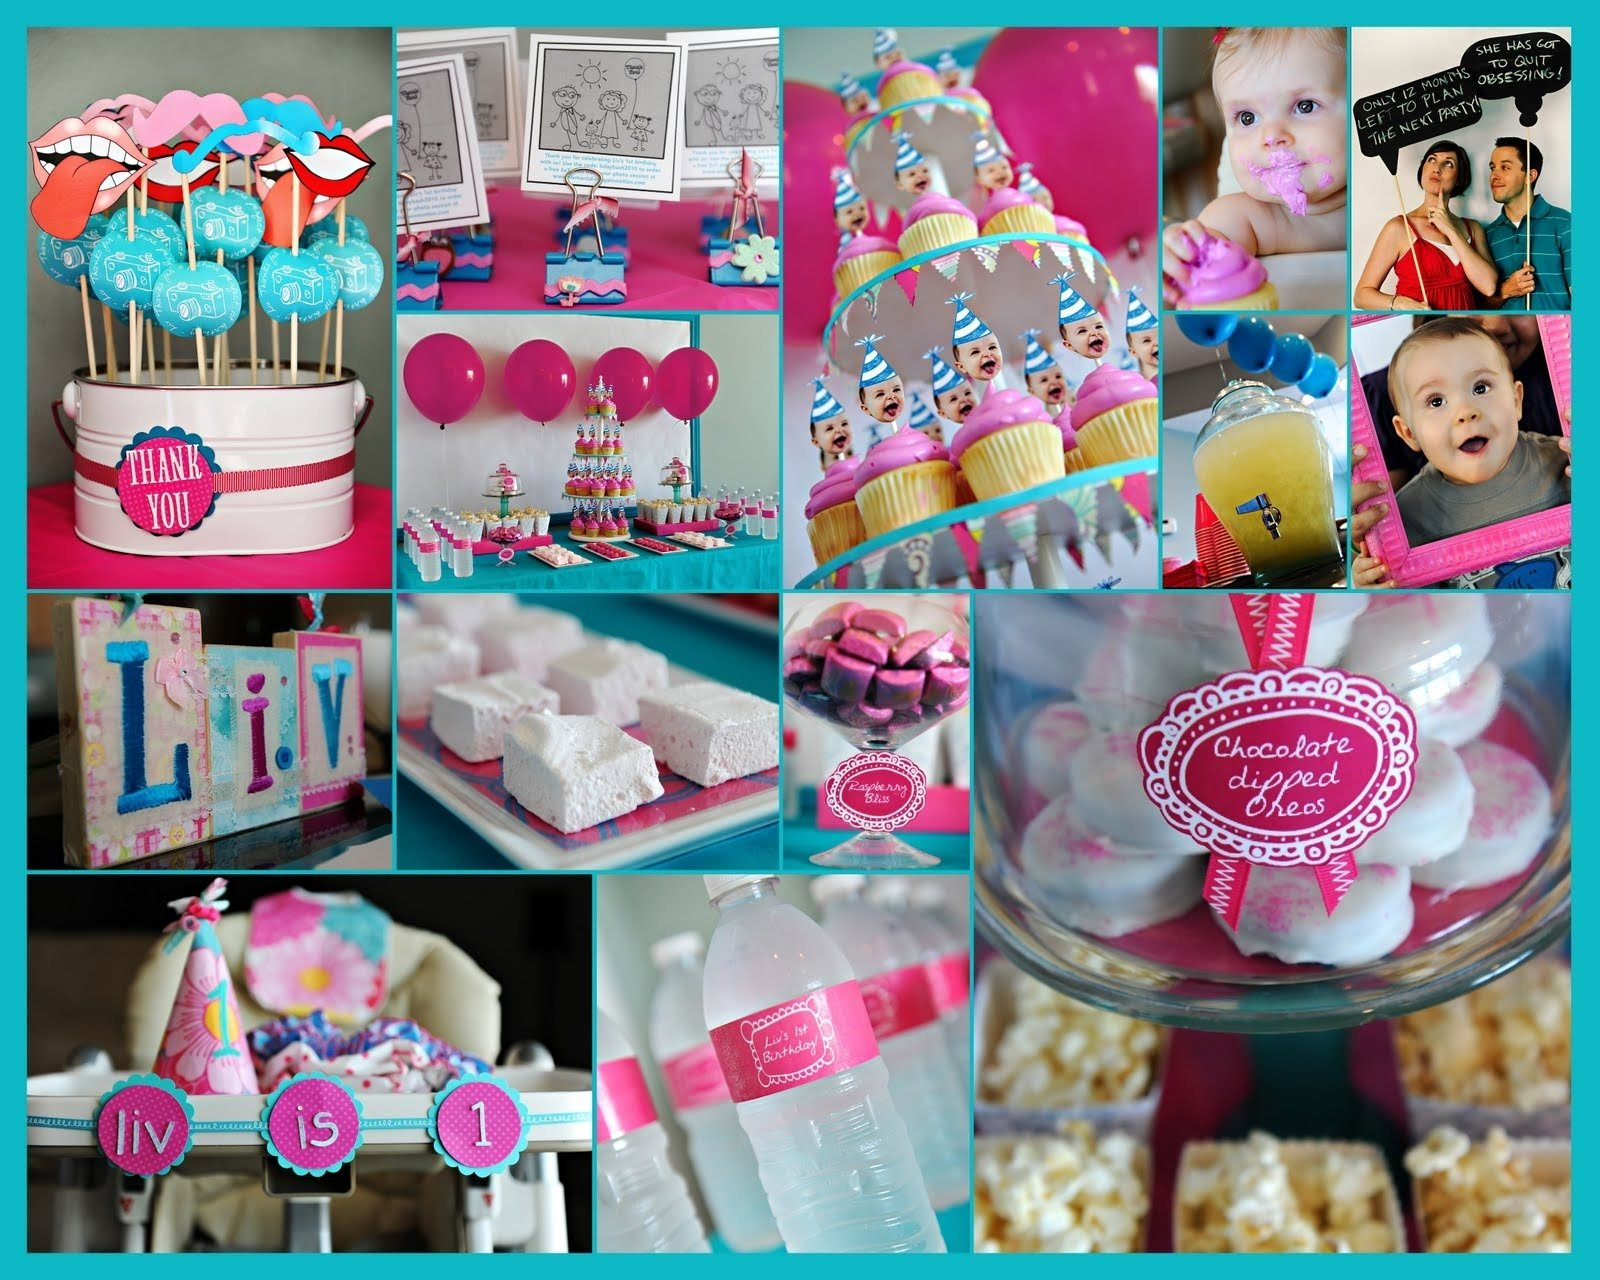 10 Best Birthday Party Ideas For 6 Year Old Girl elle belle creative one year old in a flash a first birthday party 10 2020